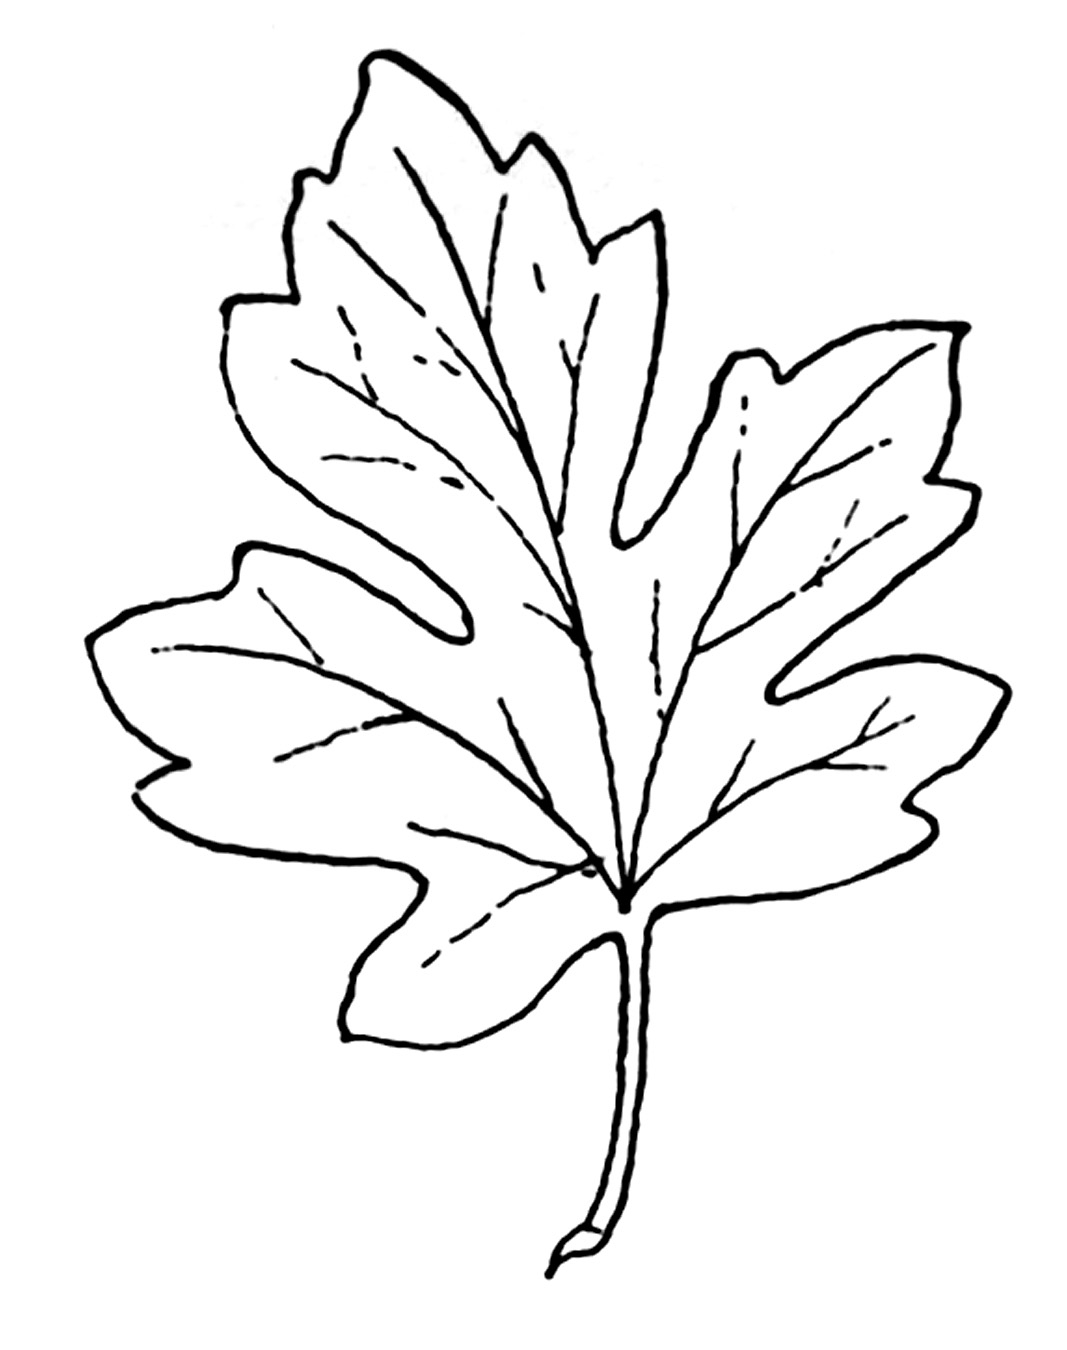 Black and white clipart leaf png black and white download Leaf black and white september leaves clipart black and white ... png black and white download